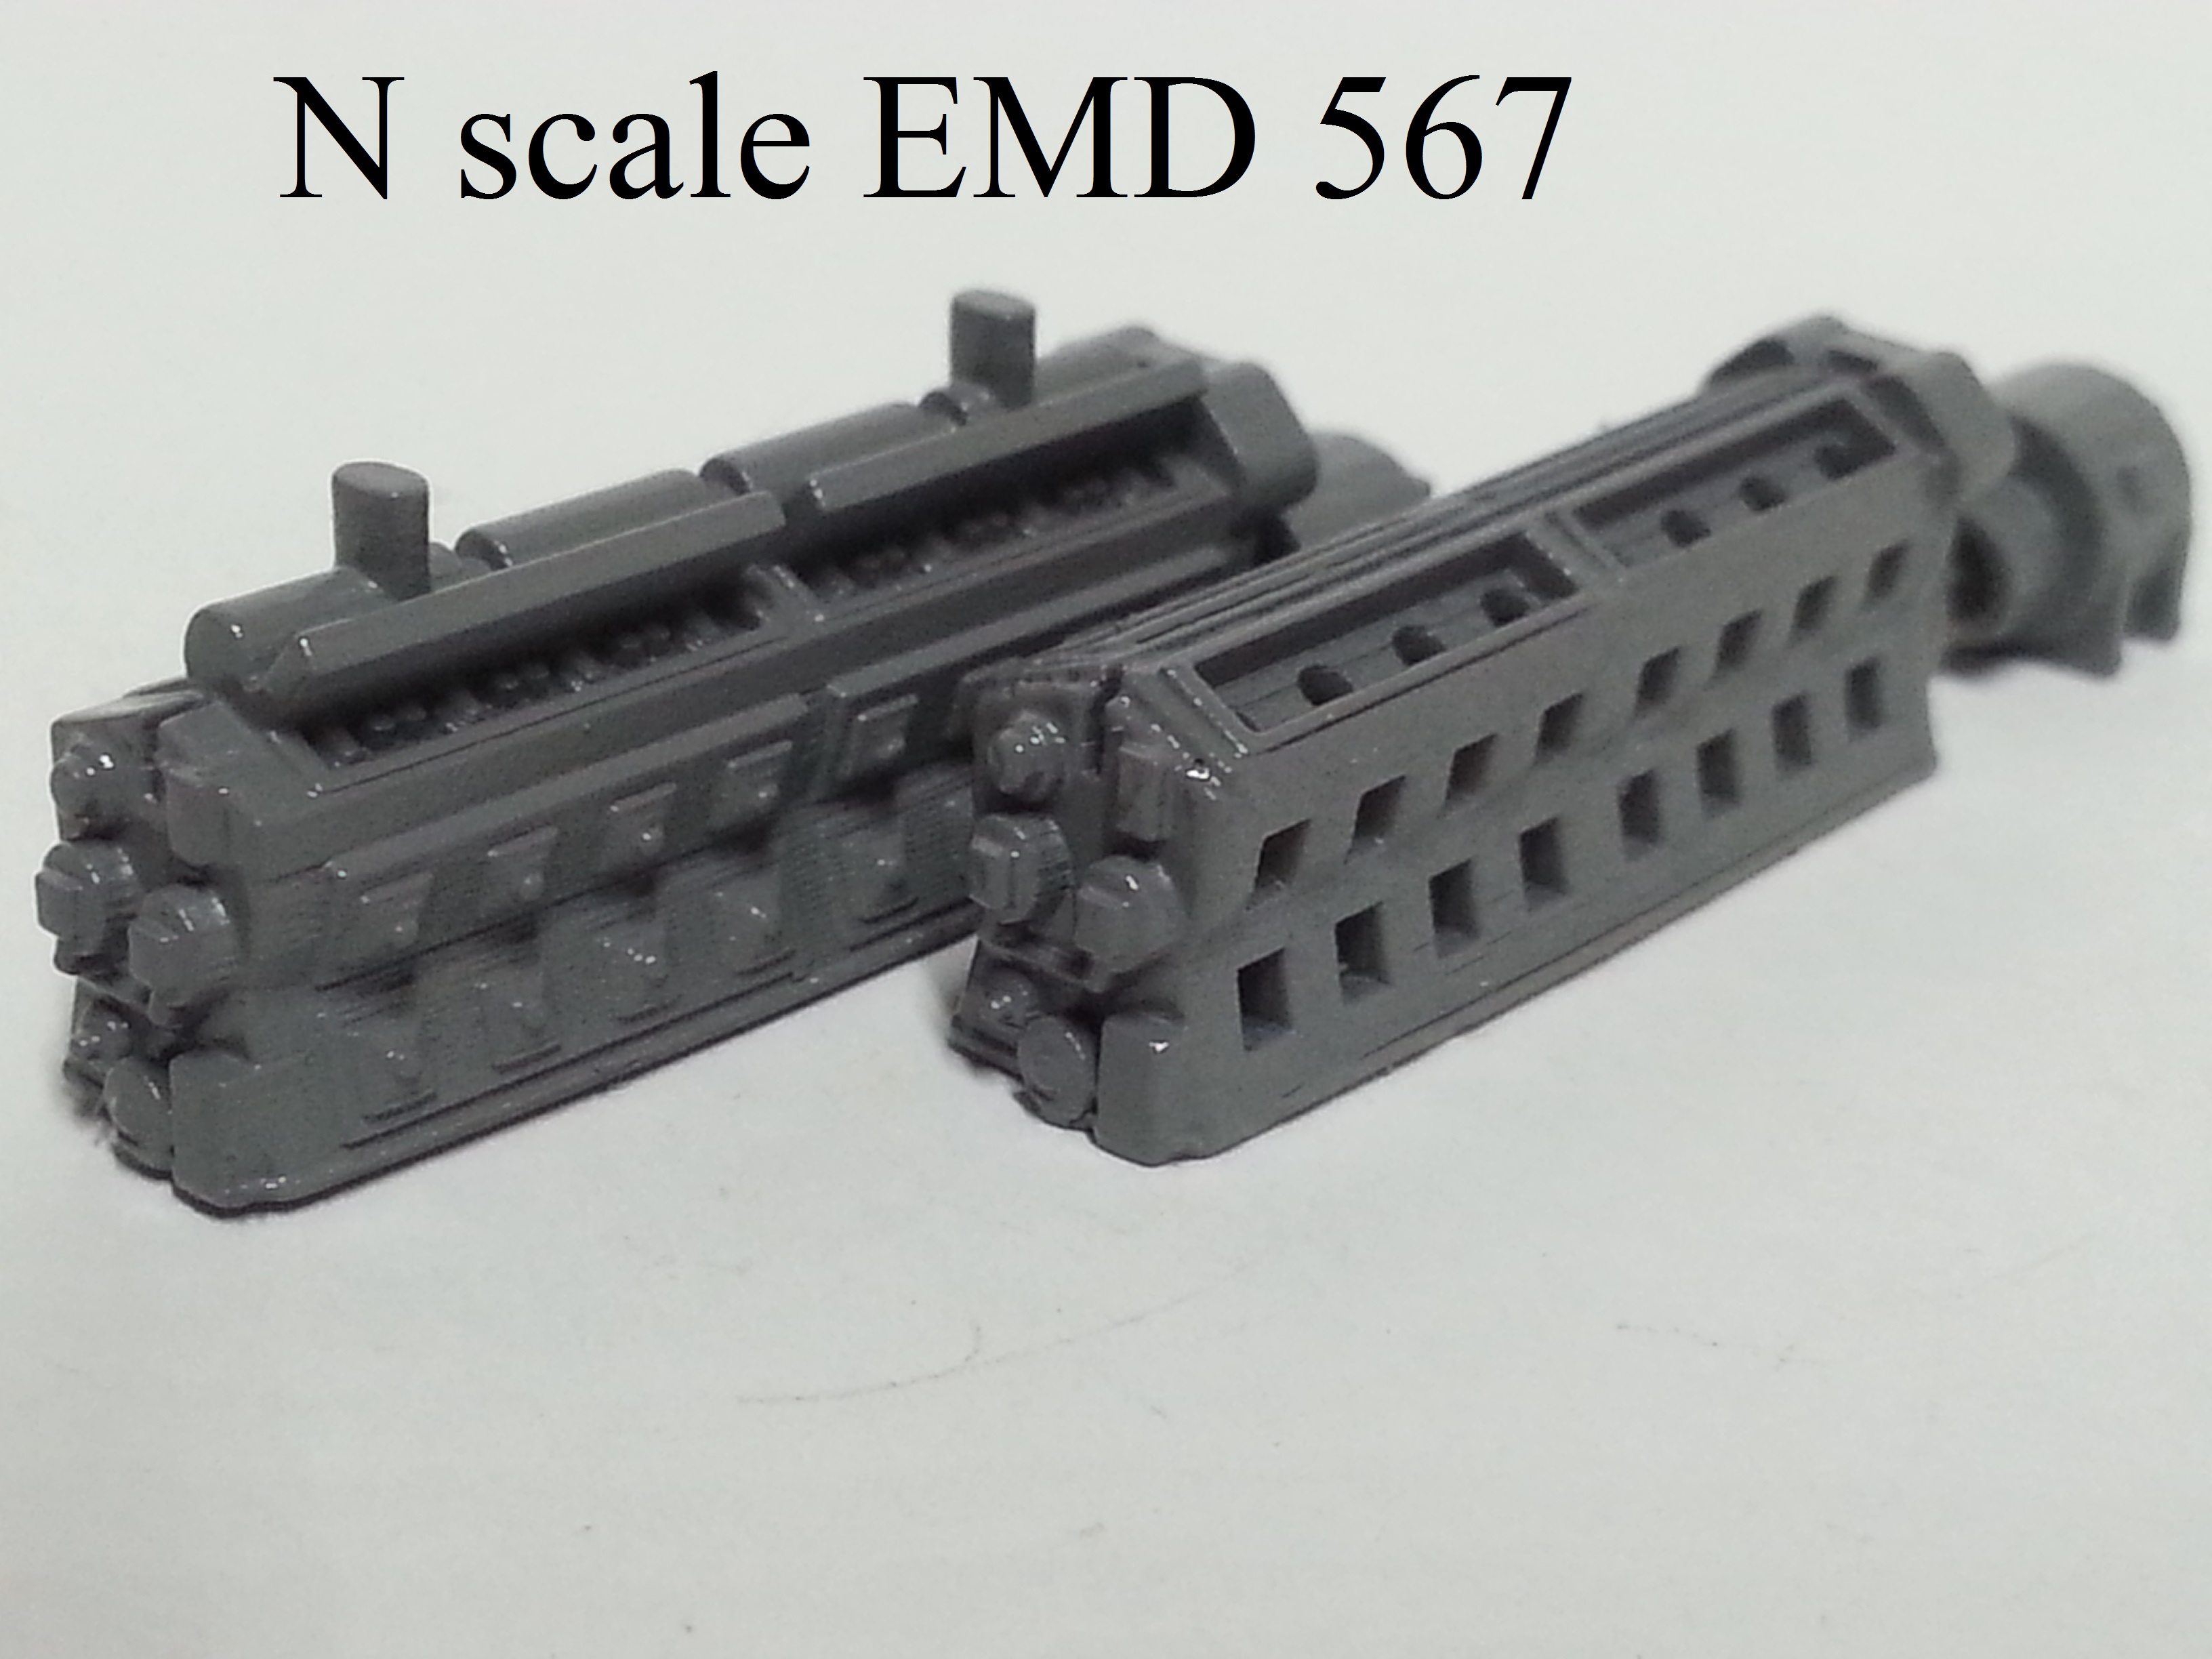 N scale EMD 567 Prime Mover